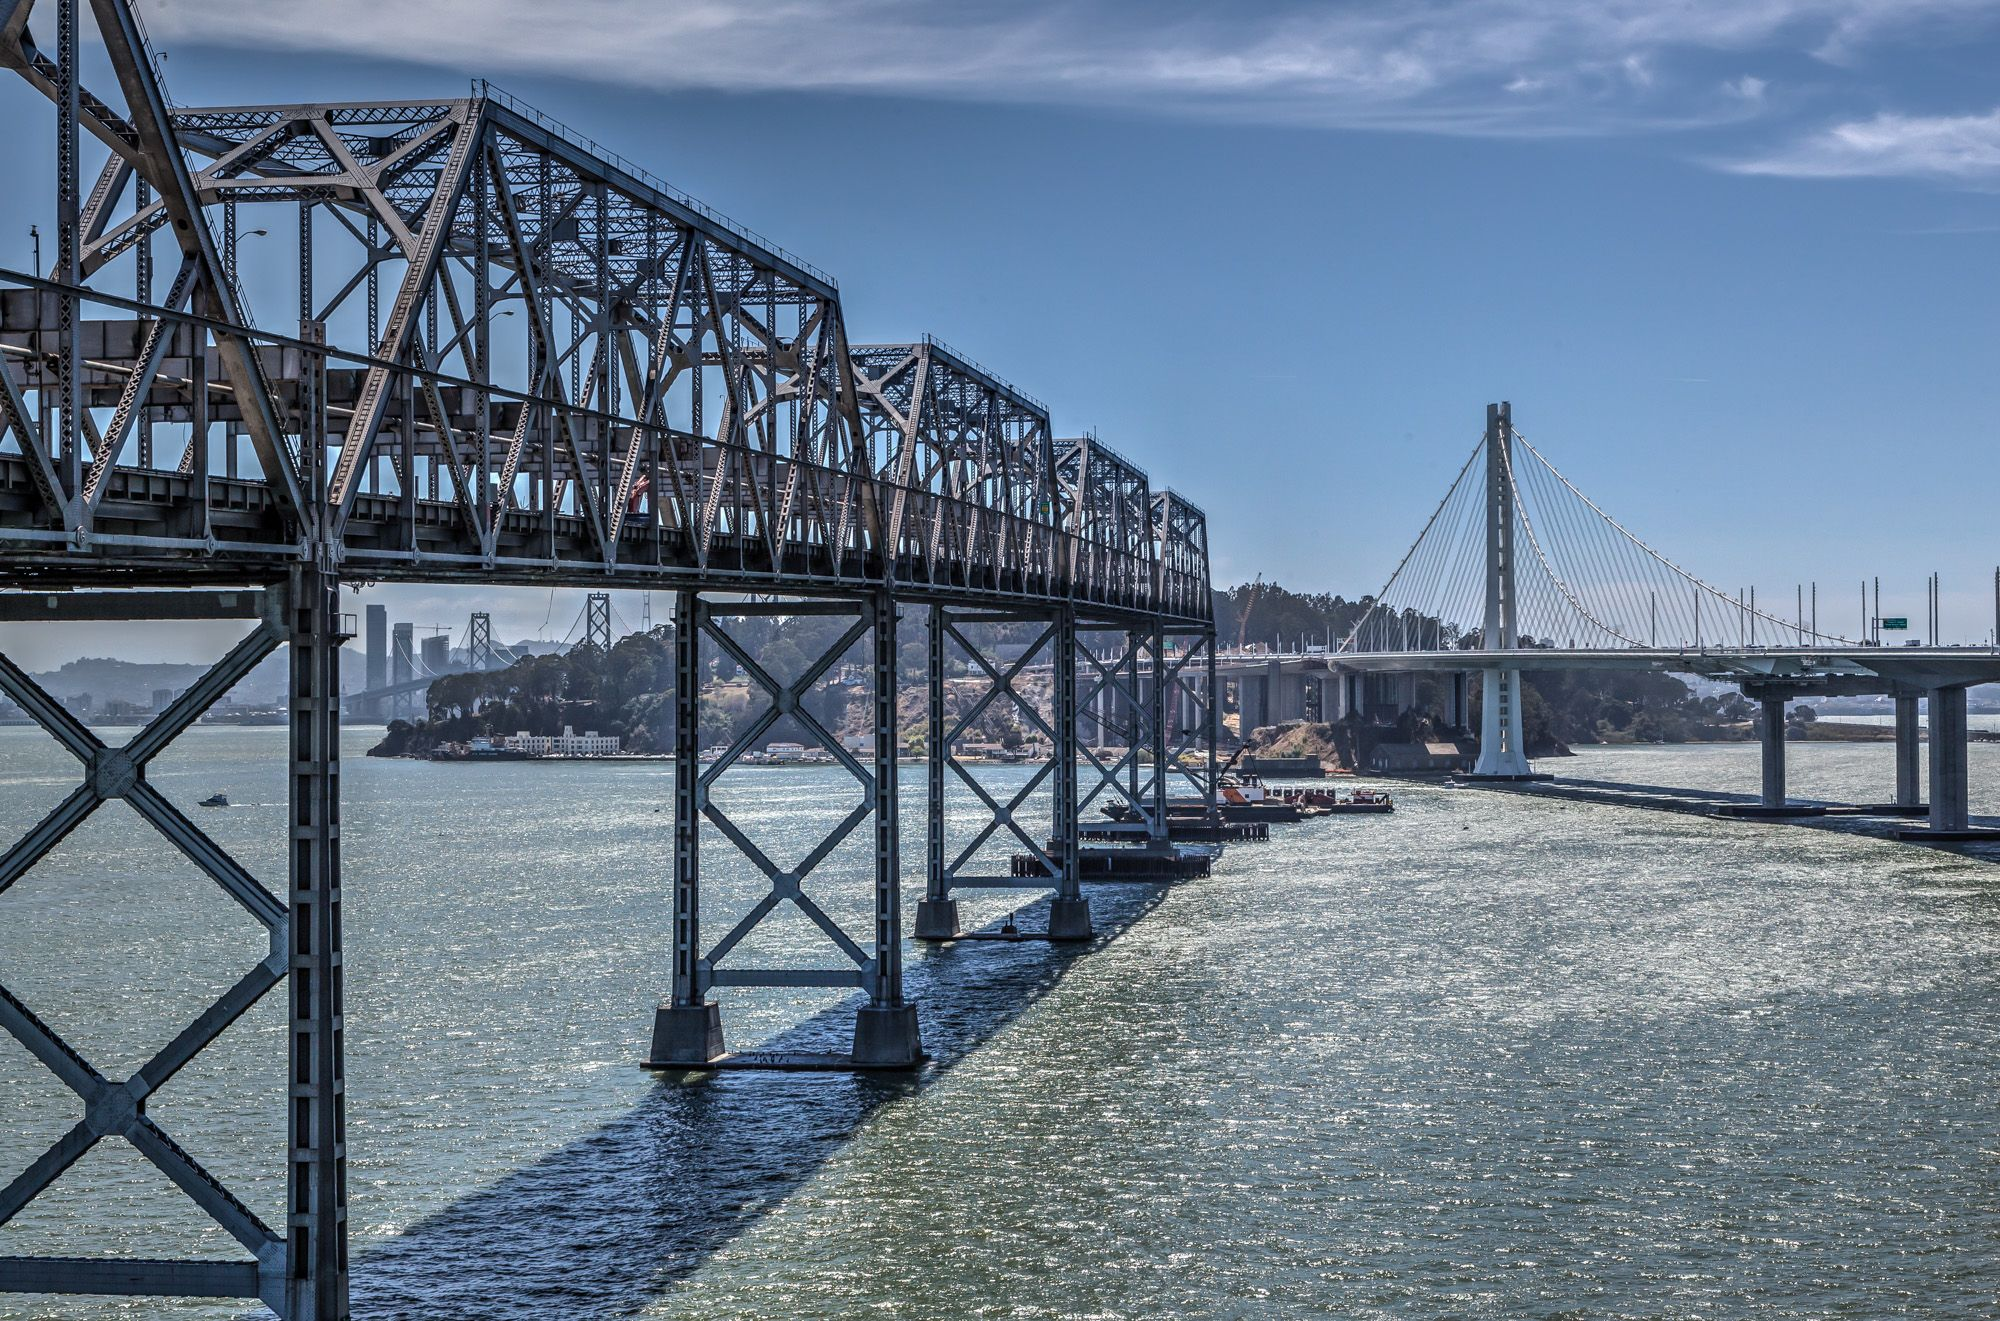 I Bet You Didn't Know What's Hiding Under the East Span of the New San Francisco Bay Bridge